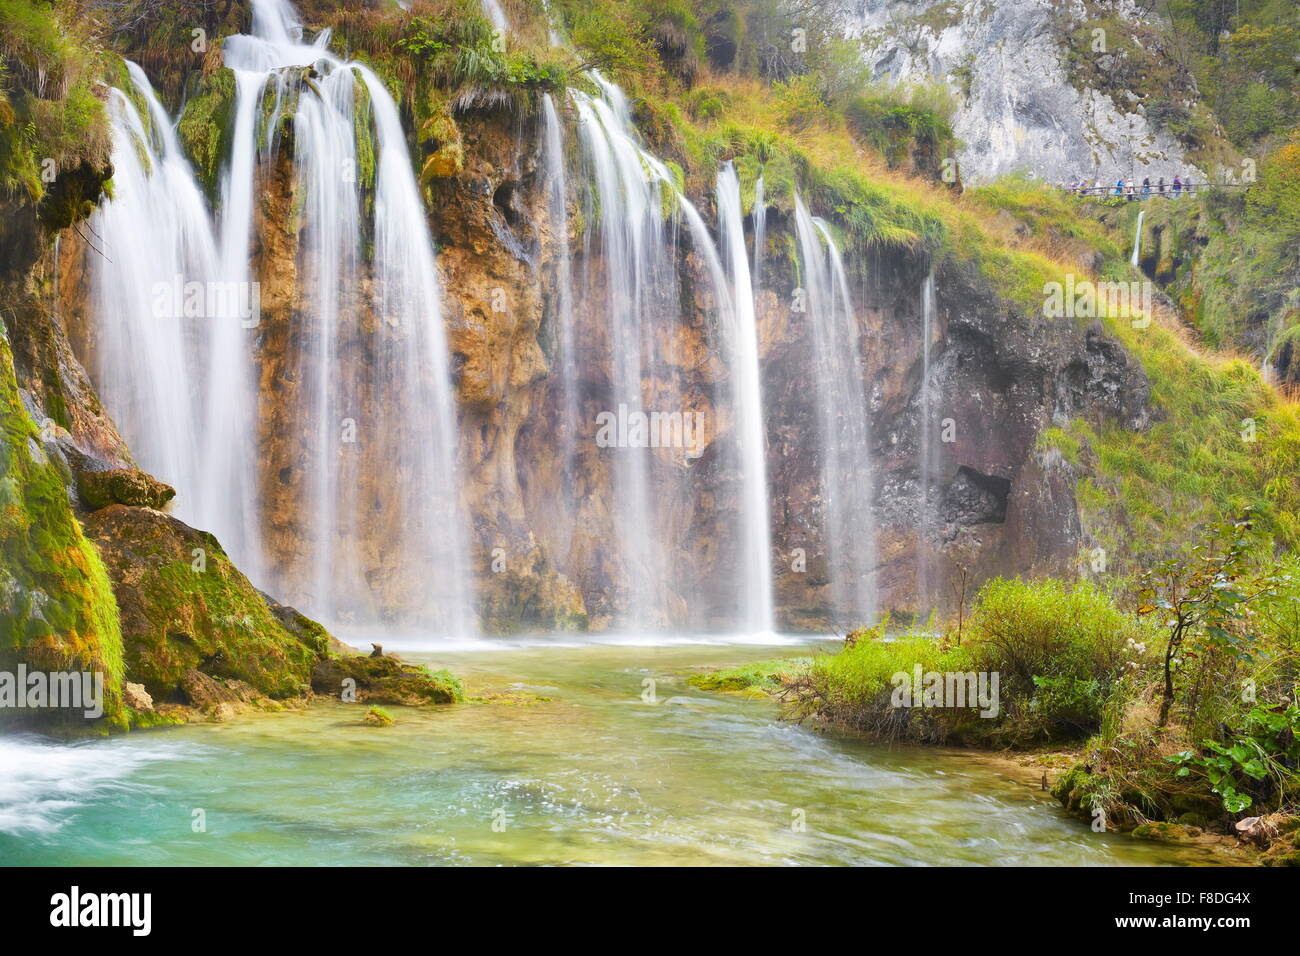 Waterfall in Plitvice Lakes National Park, Croatia, UNESCO - Stock Image